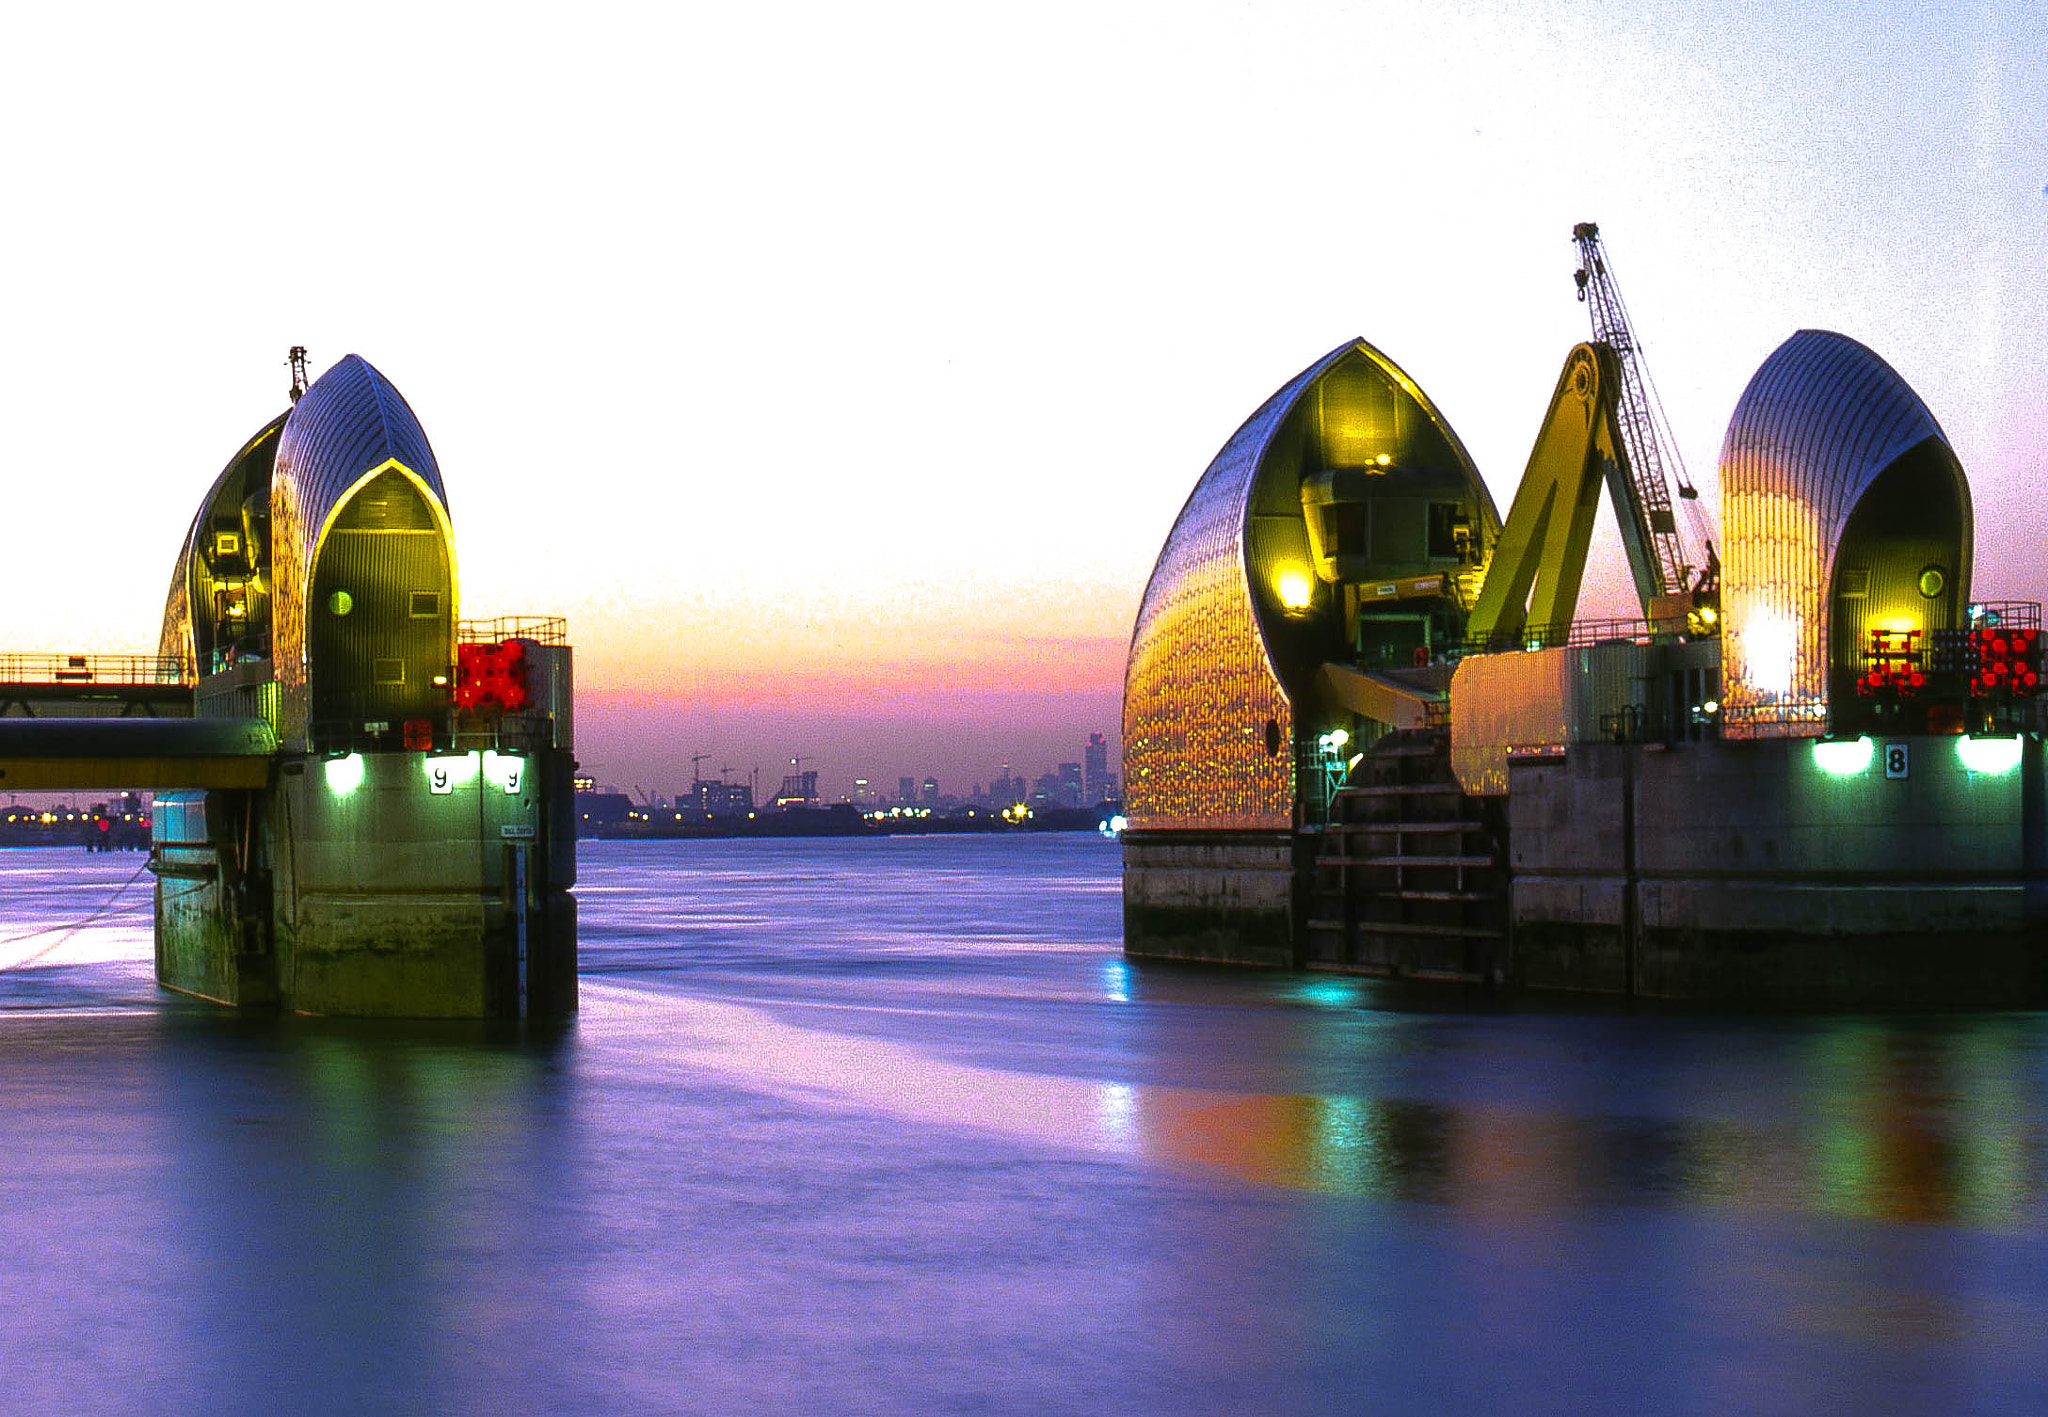 Photograph Thames Barrier Sunset by Phil Clarkstone on 500px